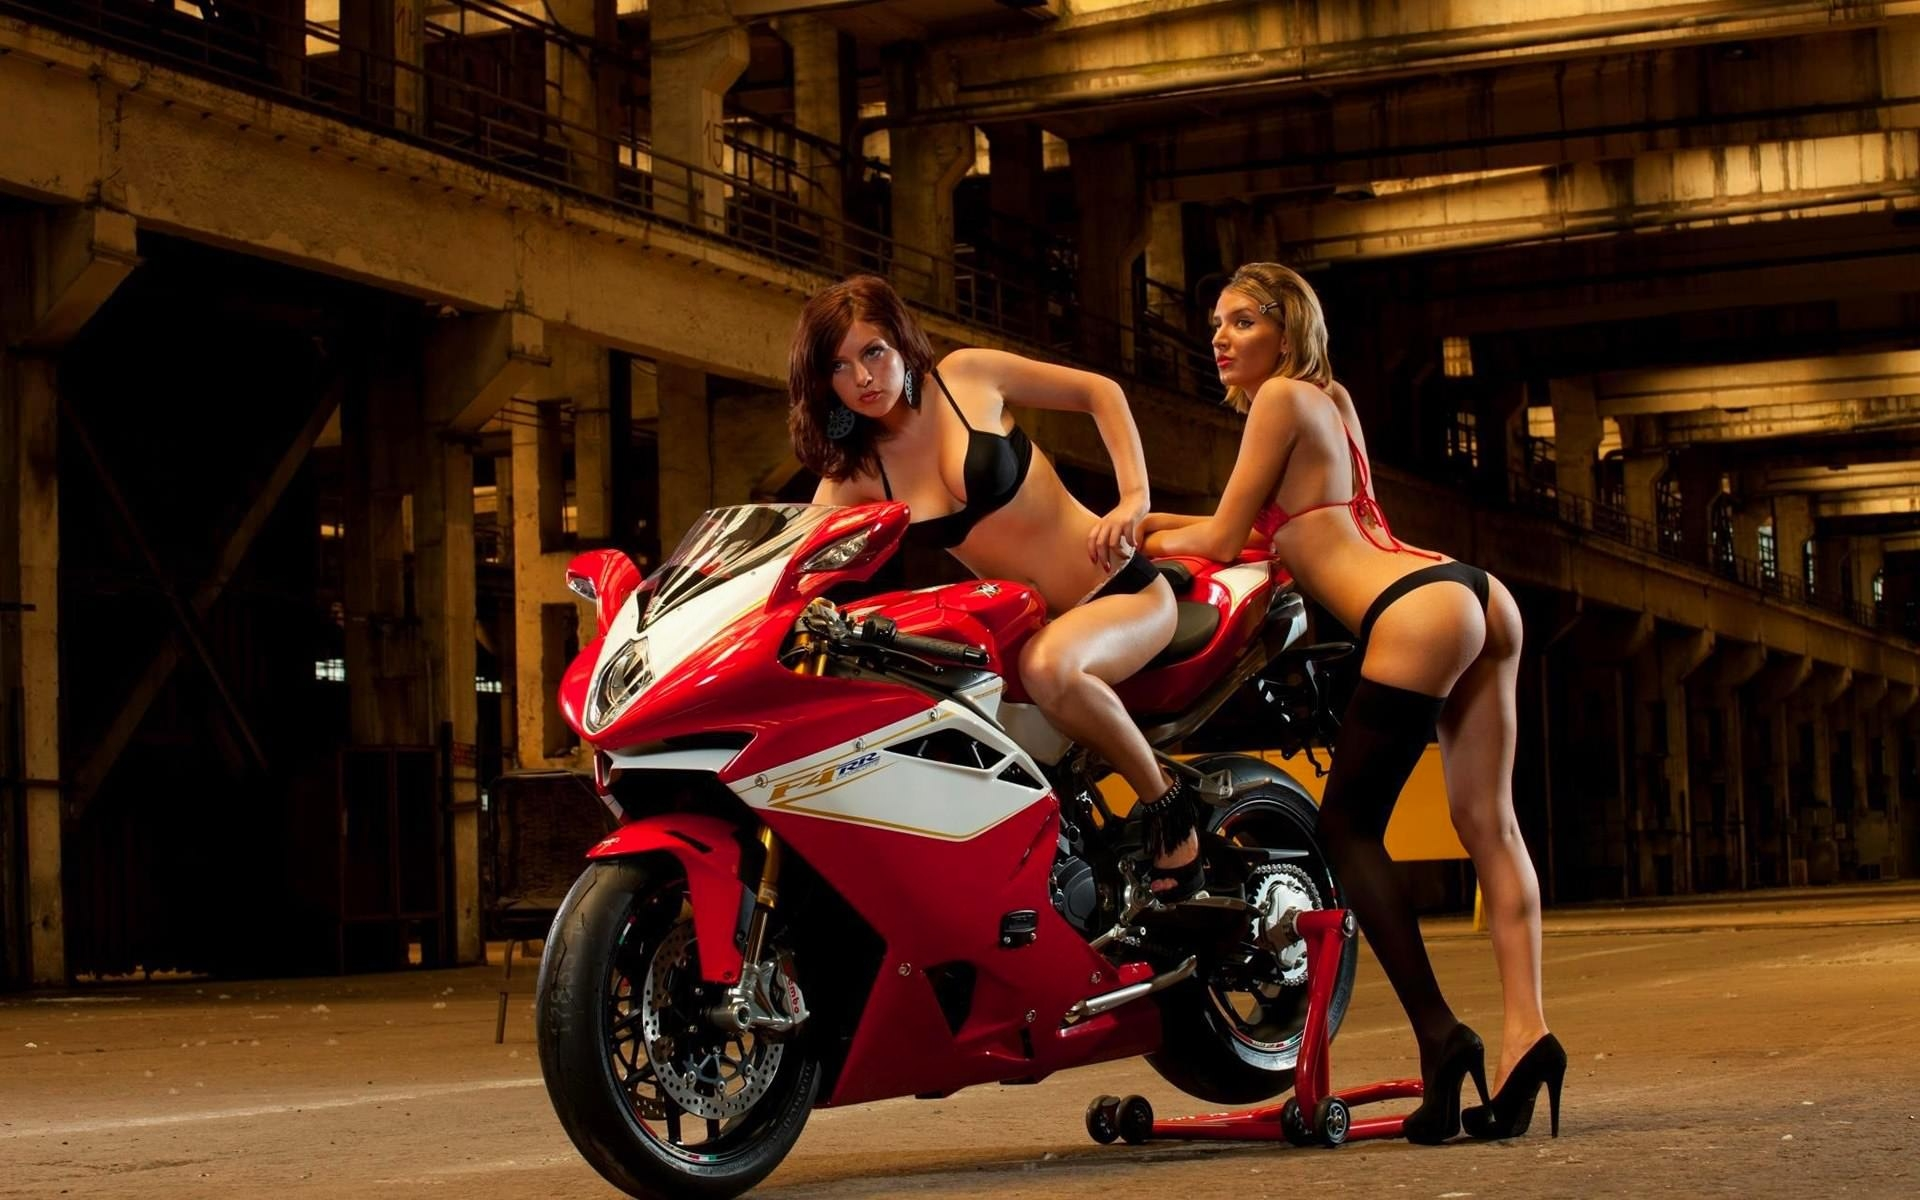 Naked Bike Stock Photos And Images